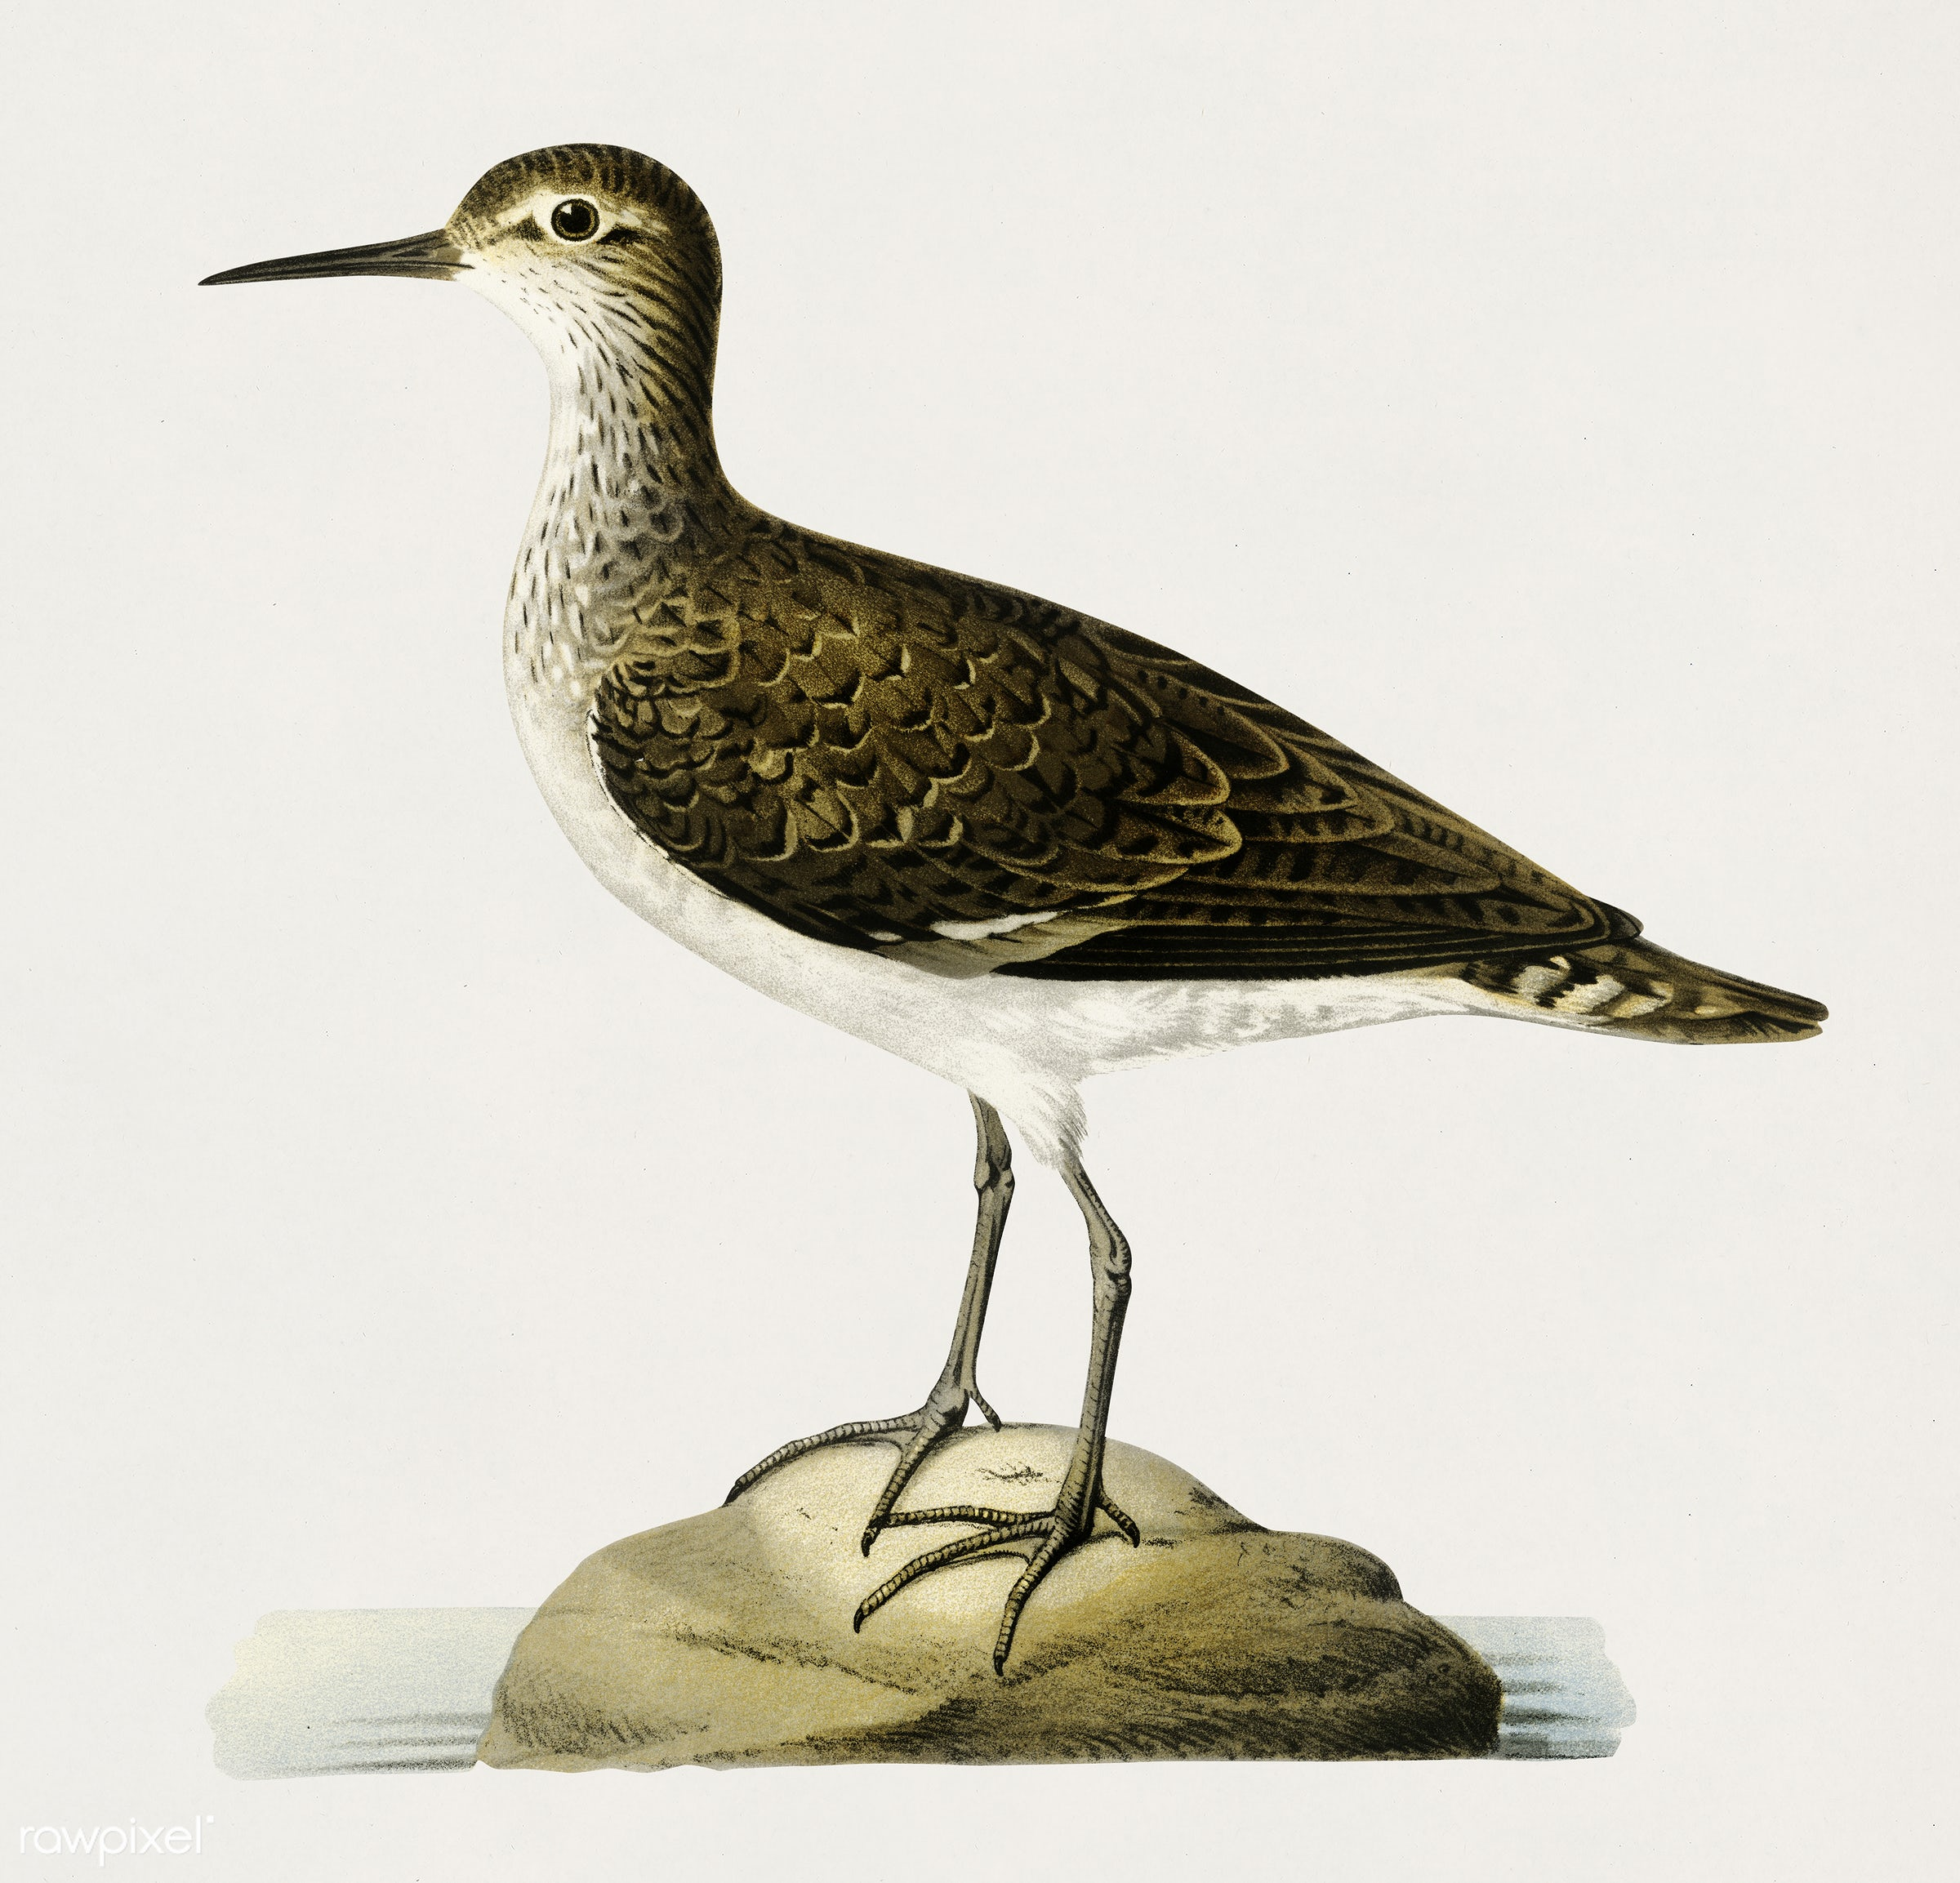 Sandpiper (Tringoides hypoleucus) illustrated by the von Wright brothers. Digitally enhanced from our own 1929 folio version...